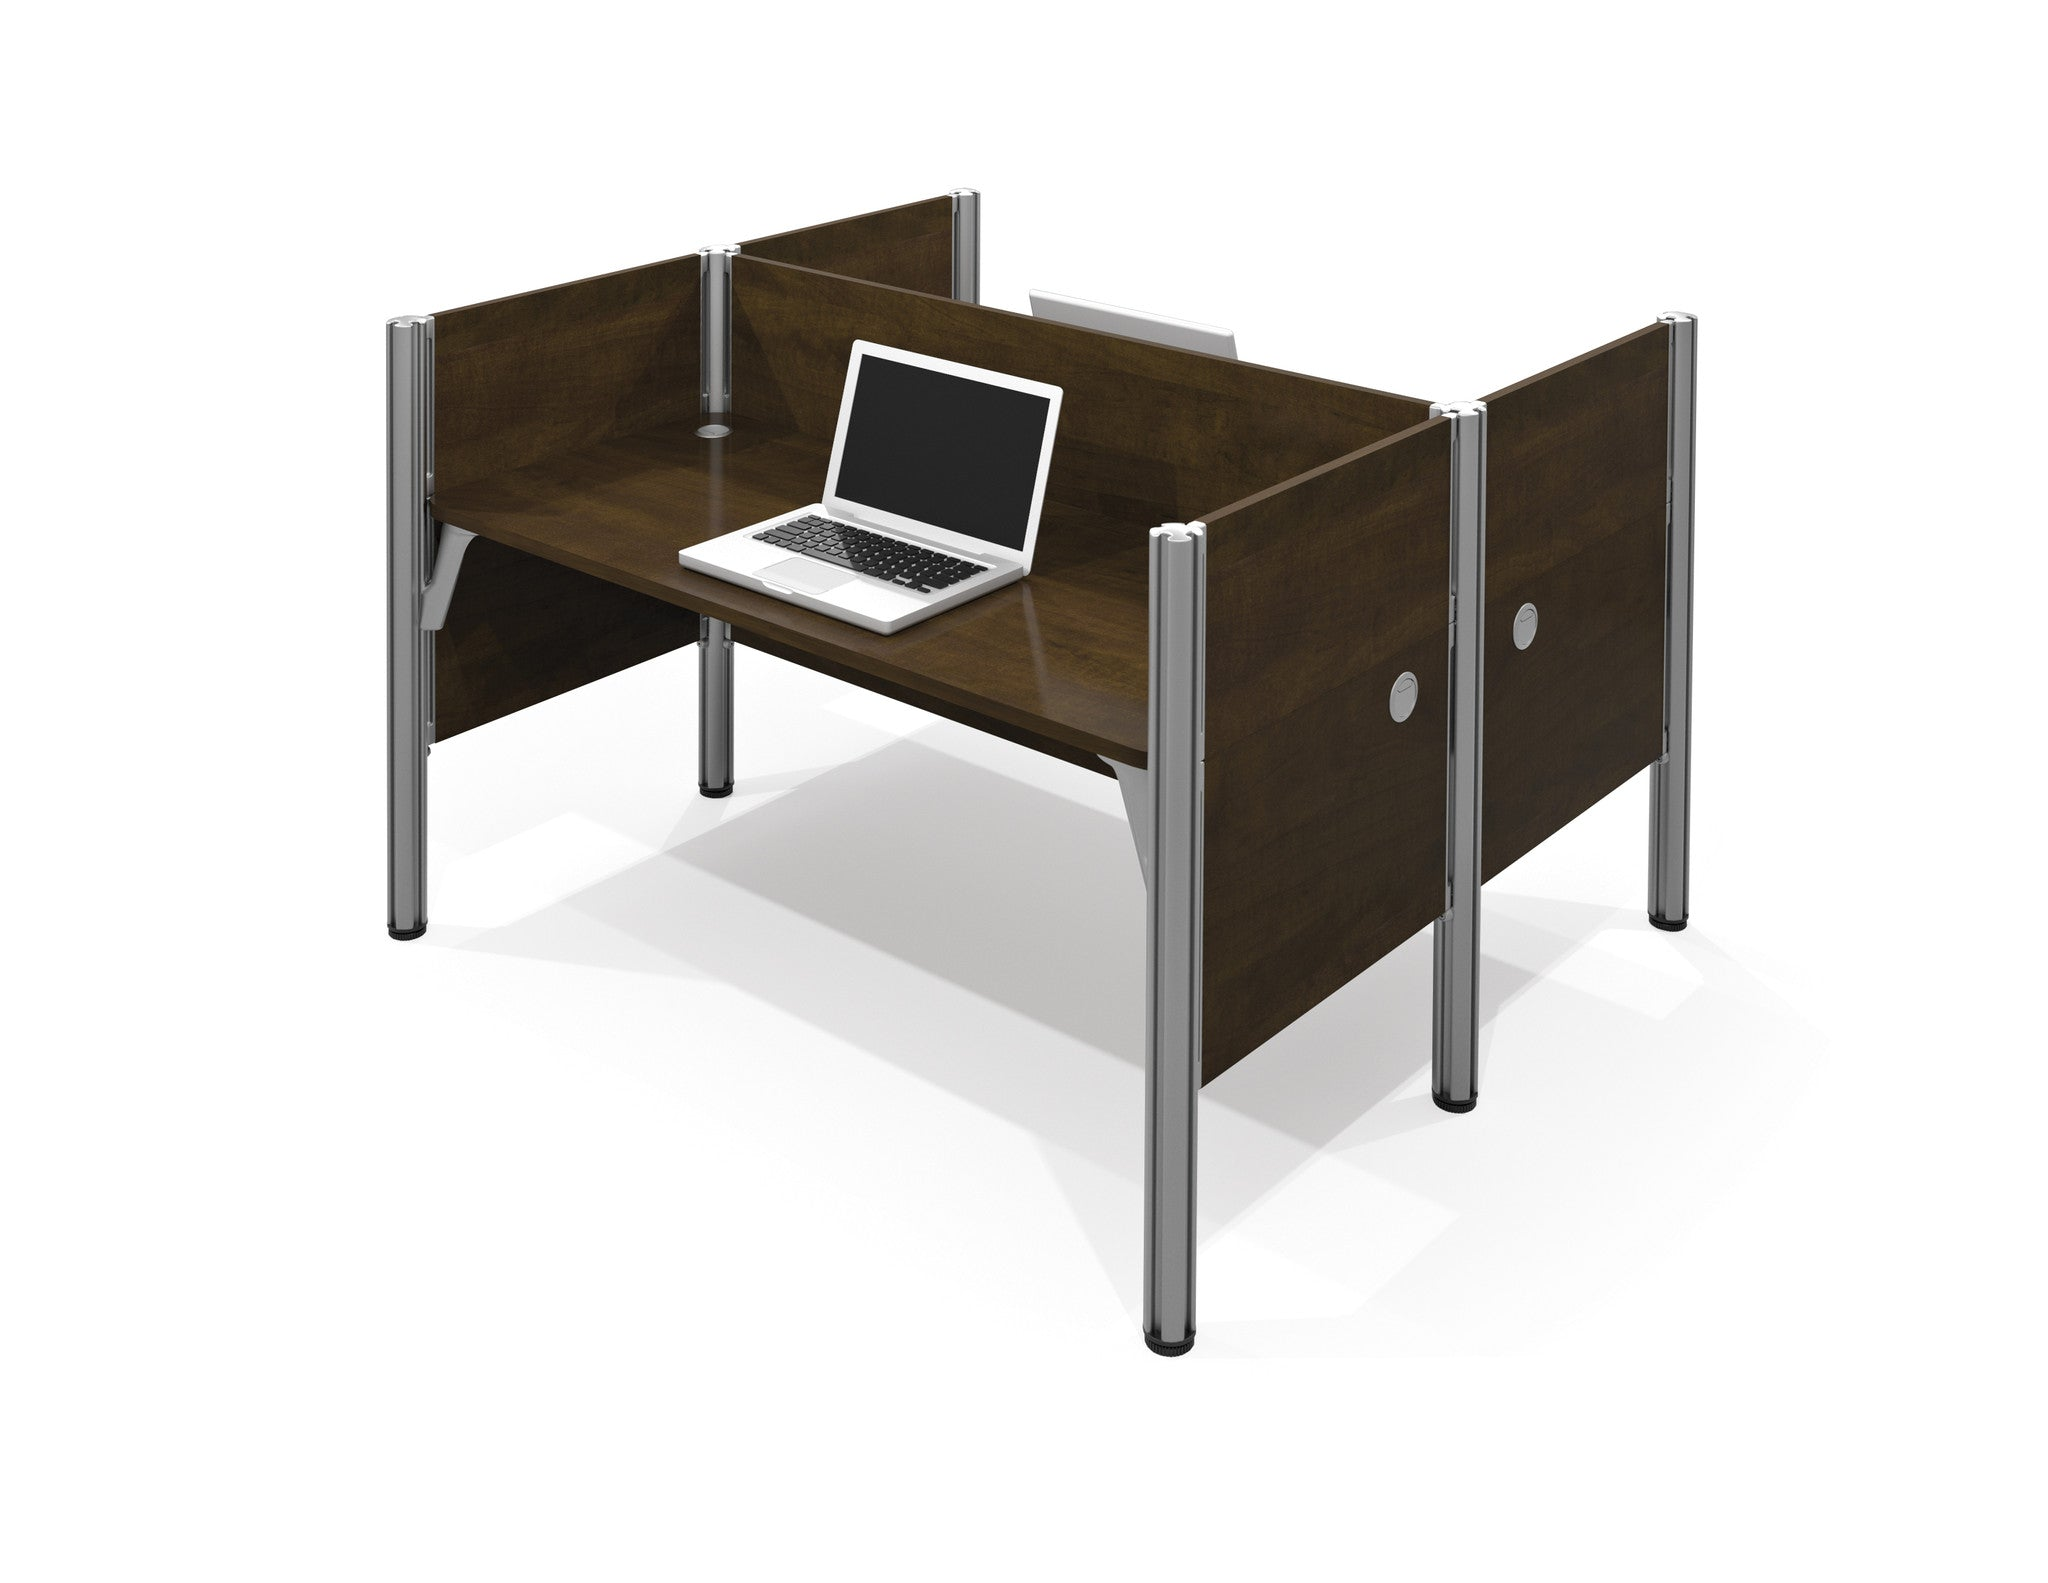 Pro-Biz Commercial Grade Double Workstation in Chocolate